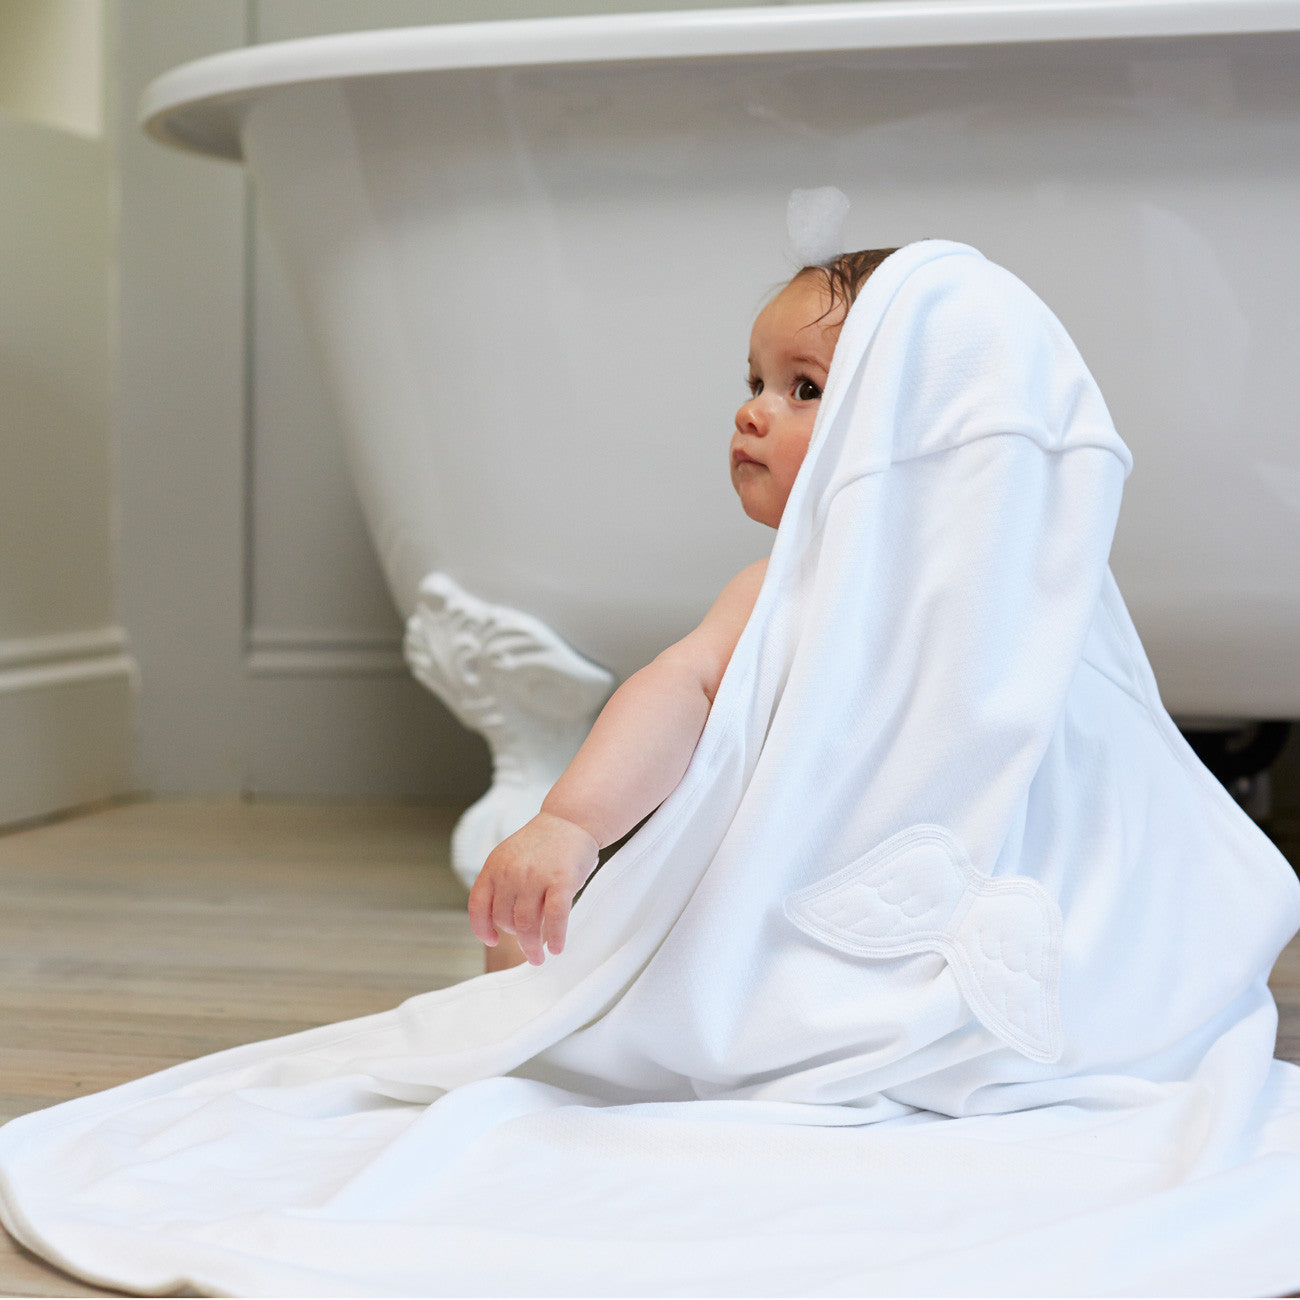 Luxury Baby Towel set by Marie Chantal at Bonjour Baby Baskets, perfect addition to your BYOB ( Build Your Own Basket )